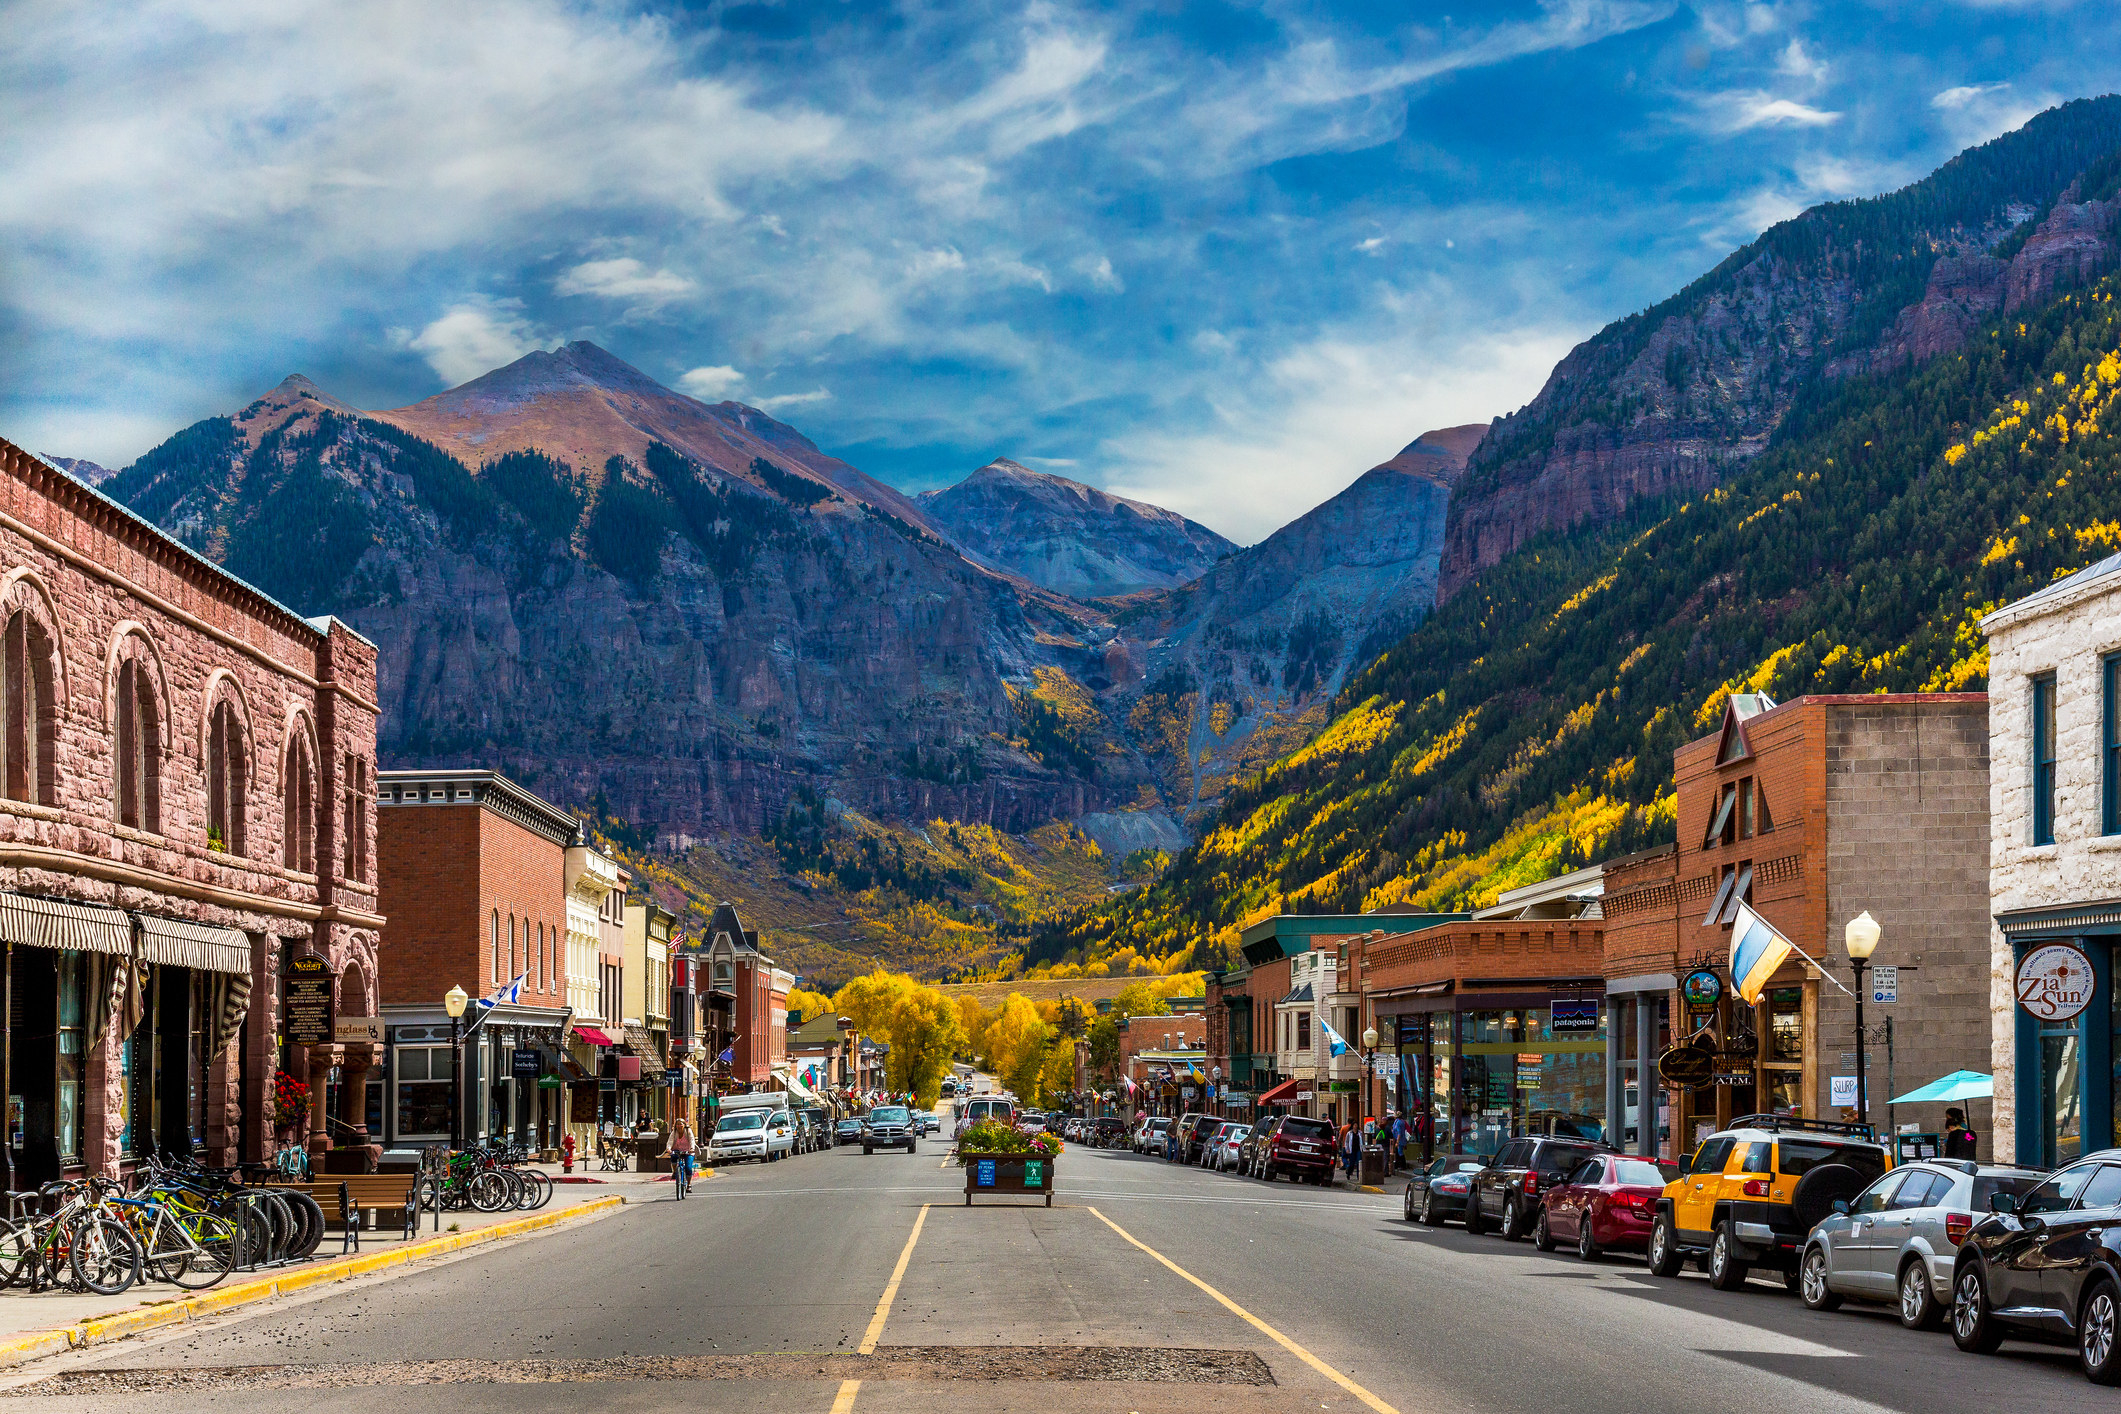 Downtown historic Telluride with mountains in the background